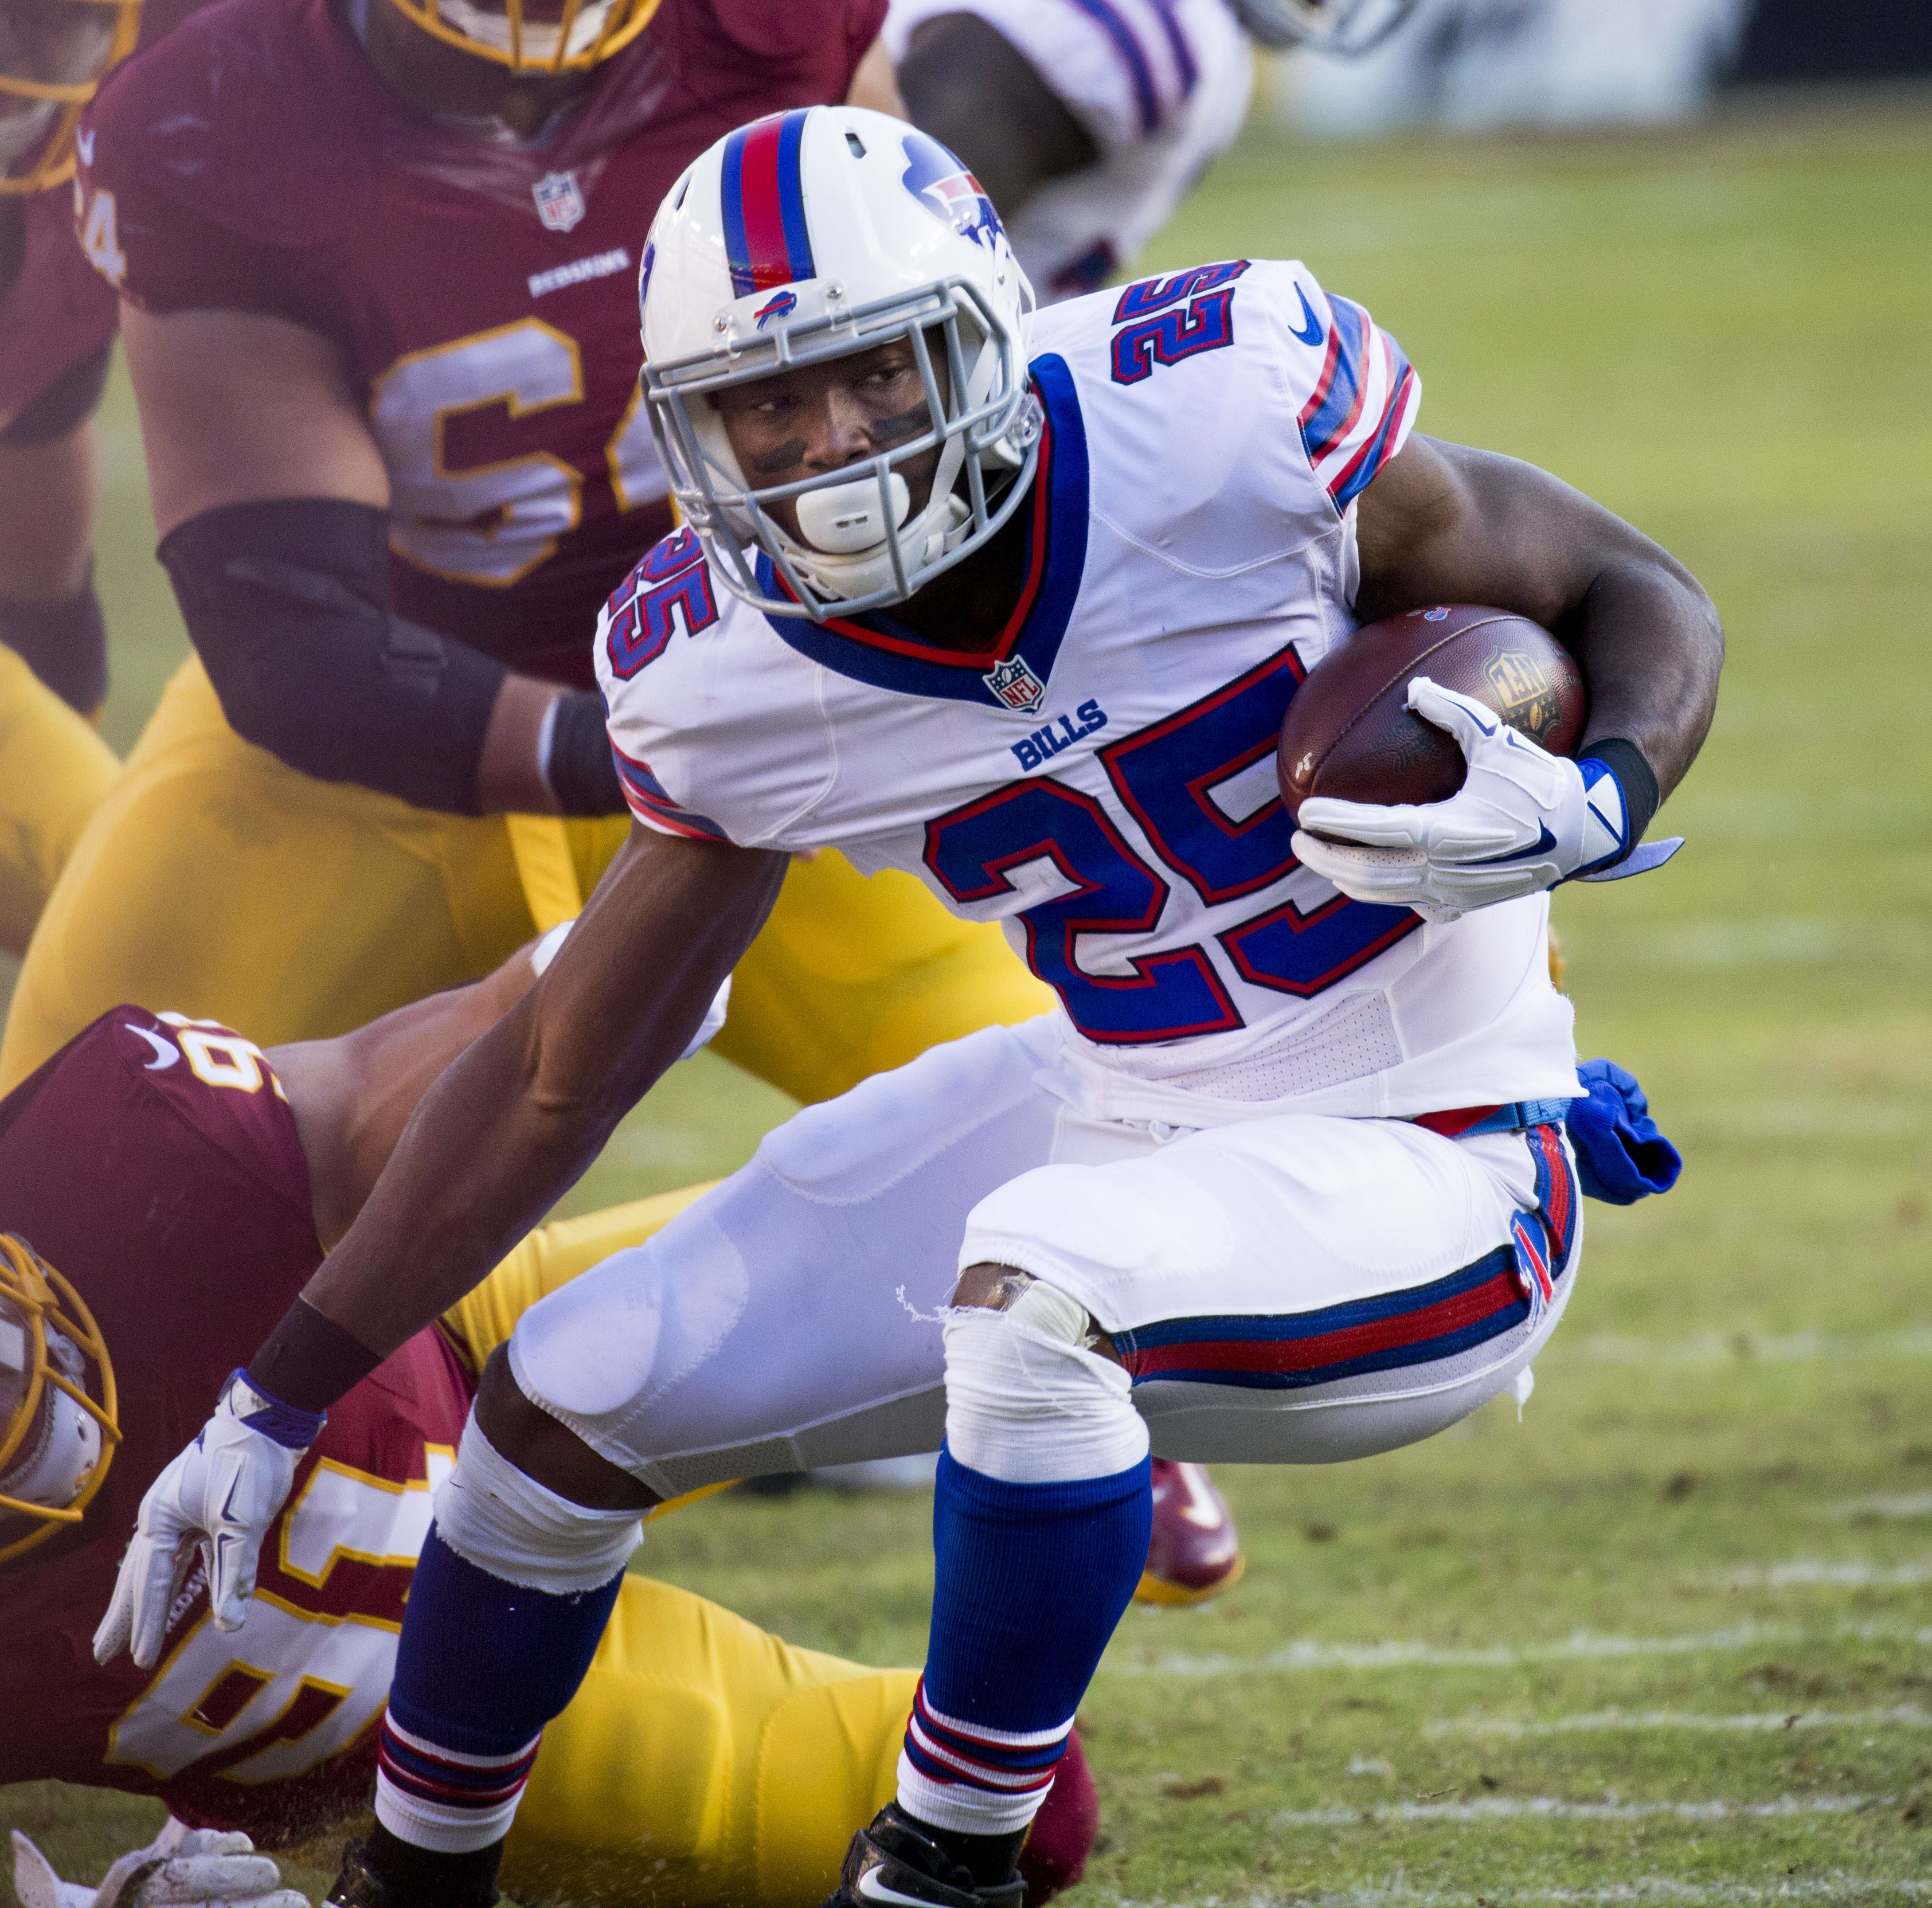 File:LeSean McCoy vs Redskins 2015.jpg